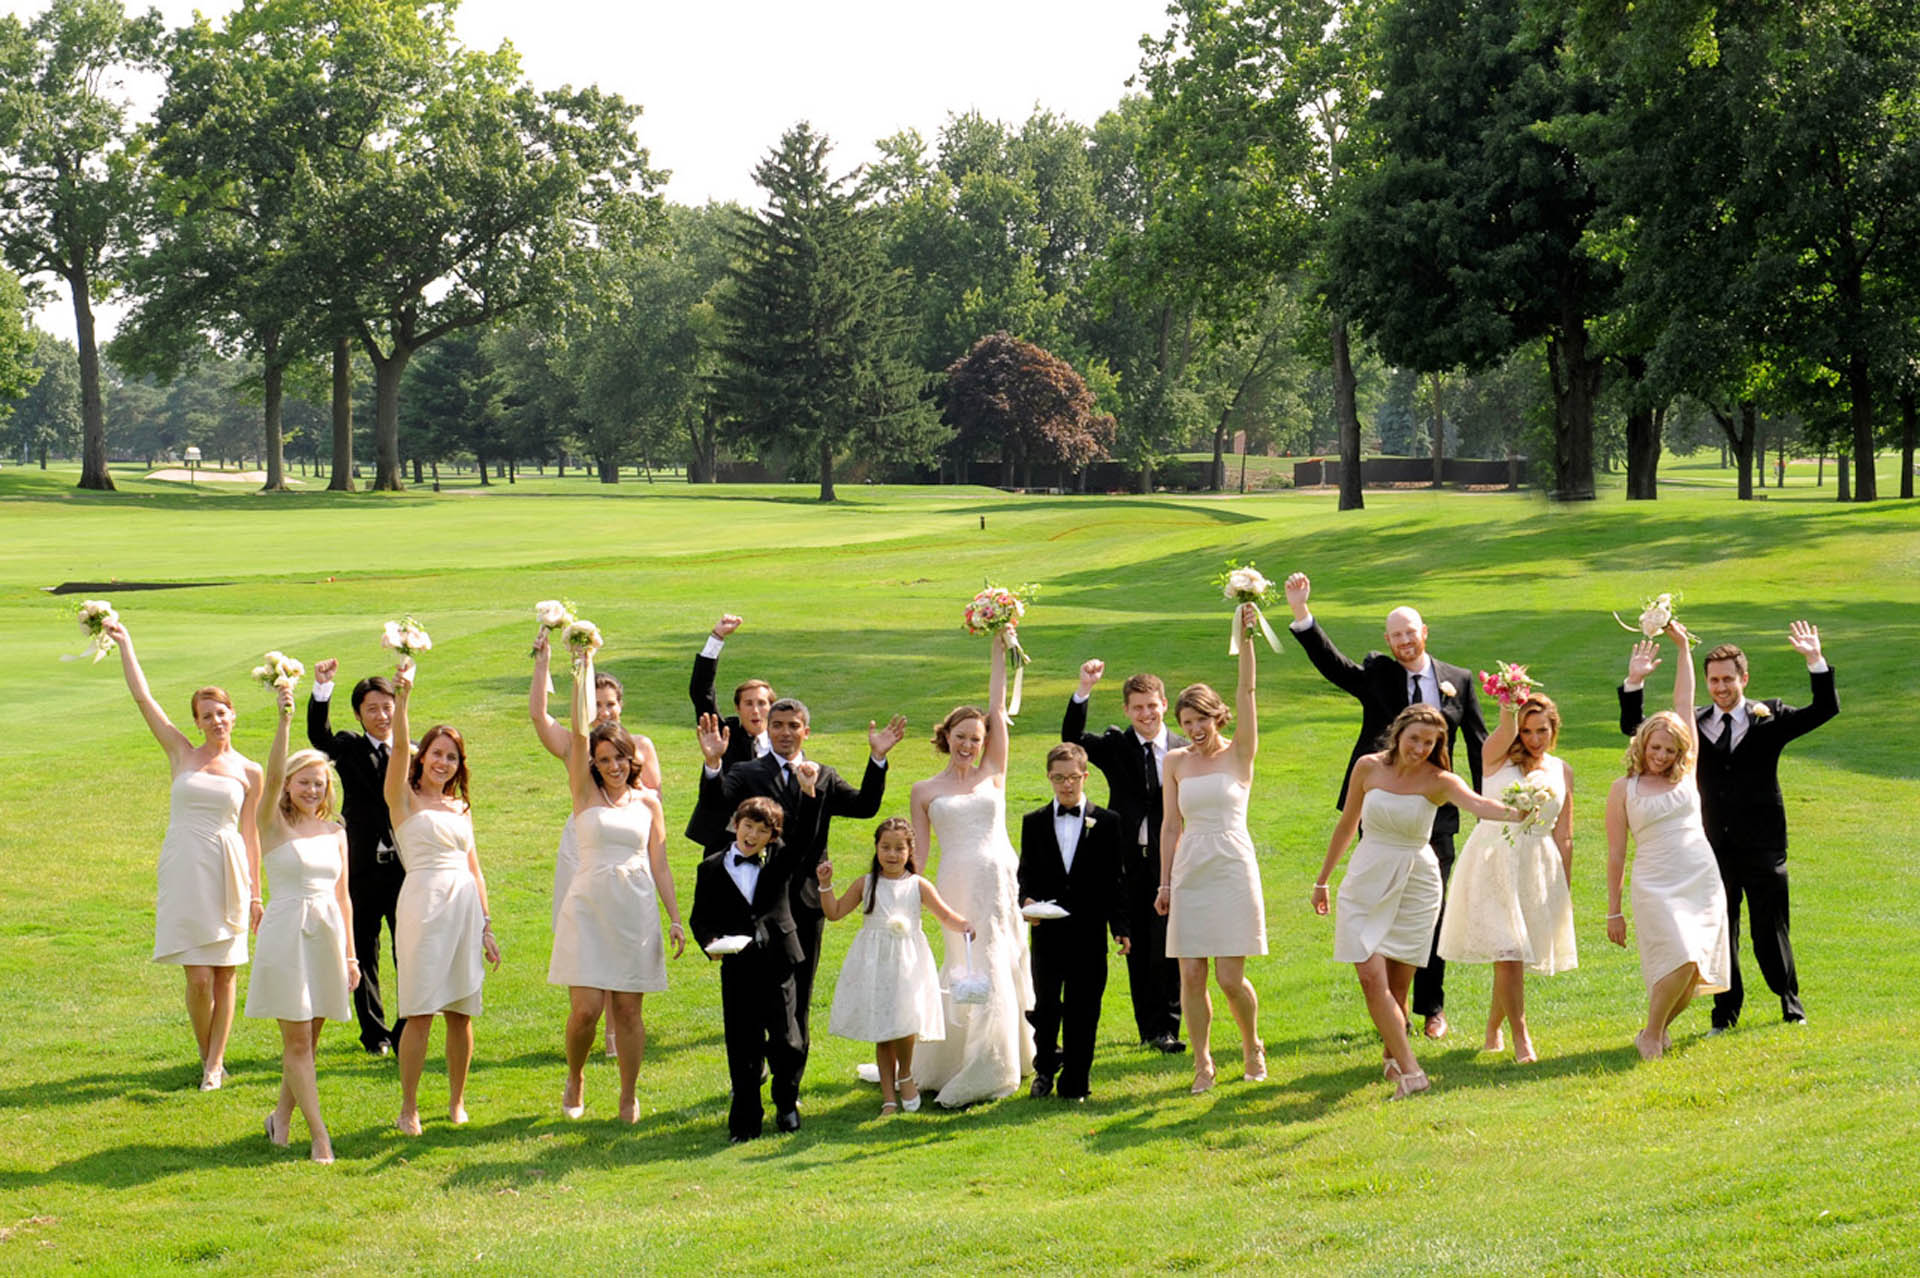 Detroit Golf Club wedding photographer's photo of the bridal party goofing around at the Detroit Golf Club.